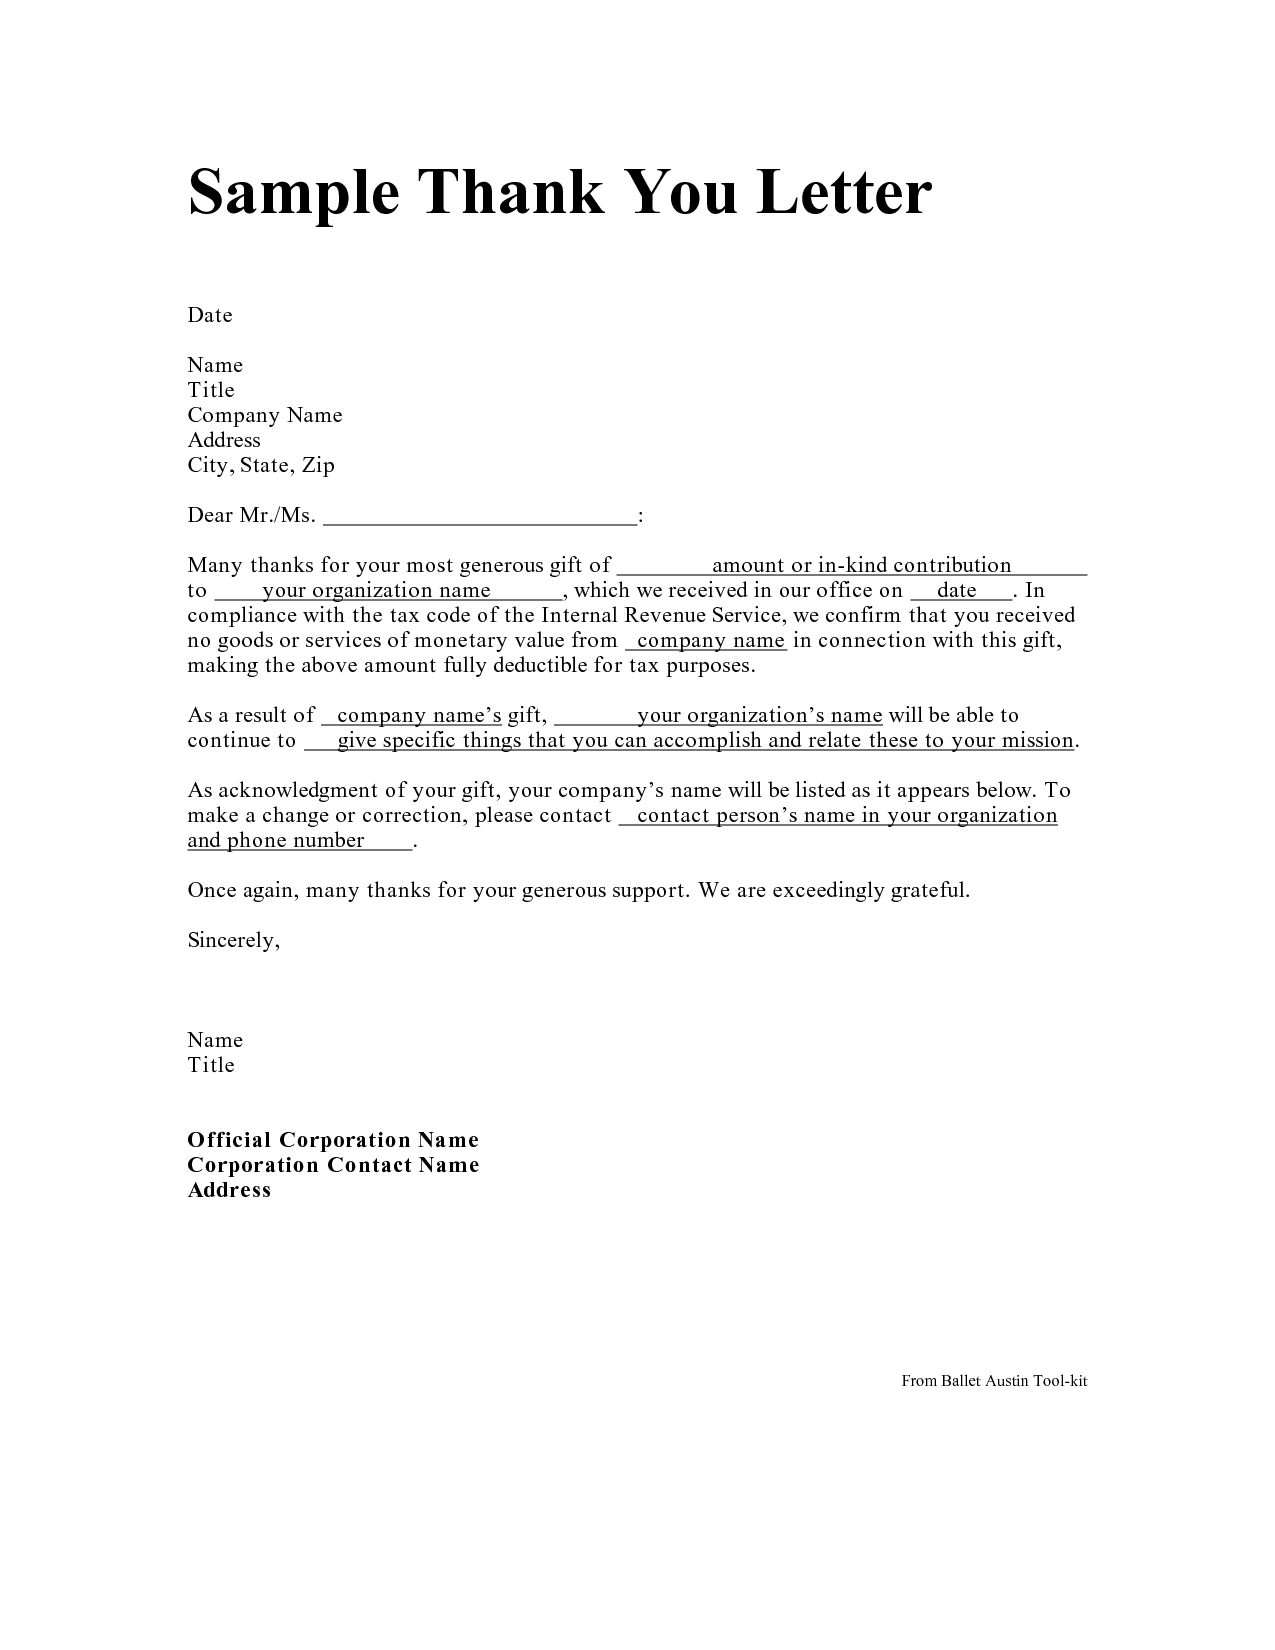 personal letter template example-Personal Thank You Letter Personal Thank You Letter Samples Writing Thank You Notes 18-l